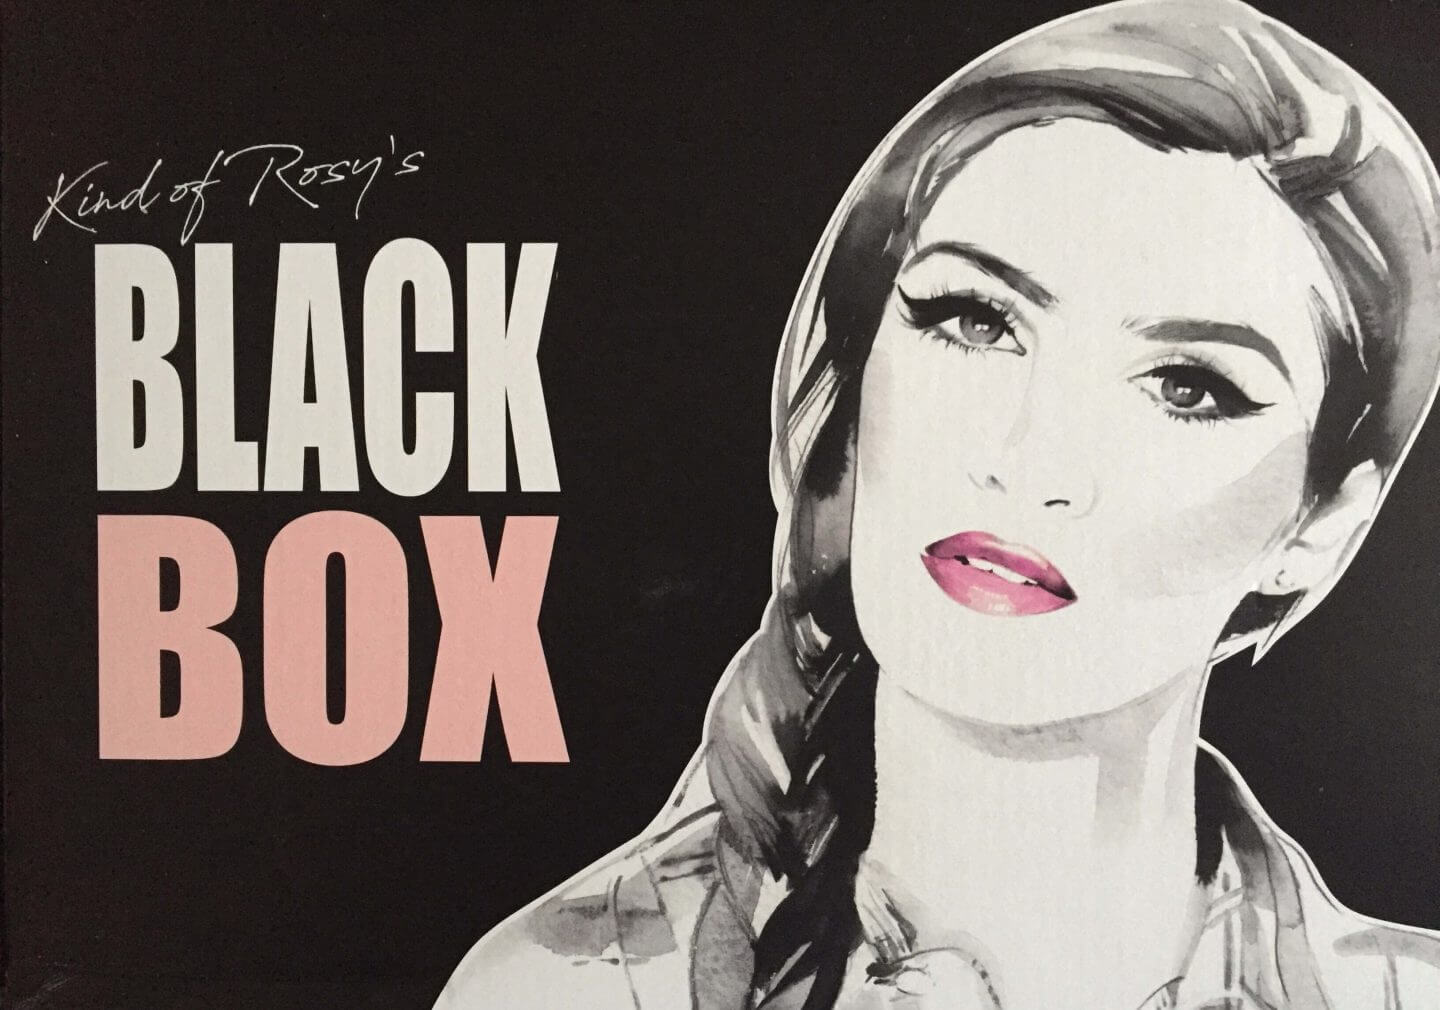 Black Box Kind of Rosy